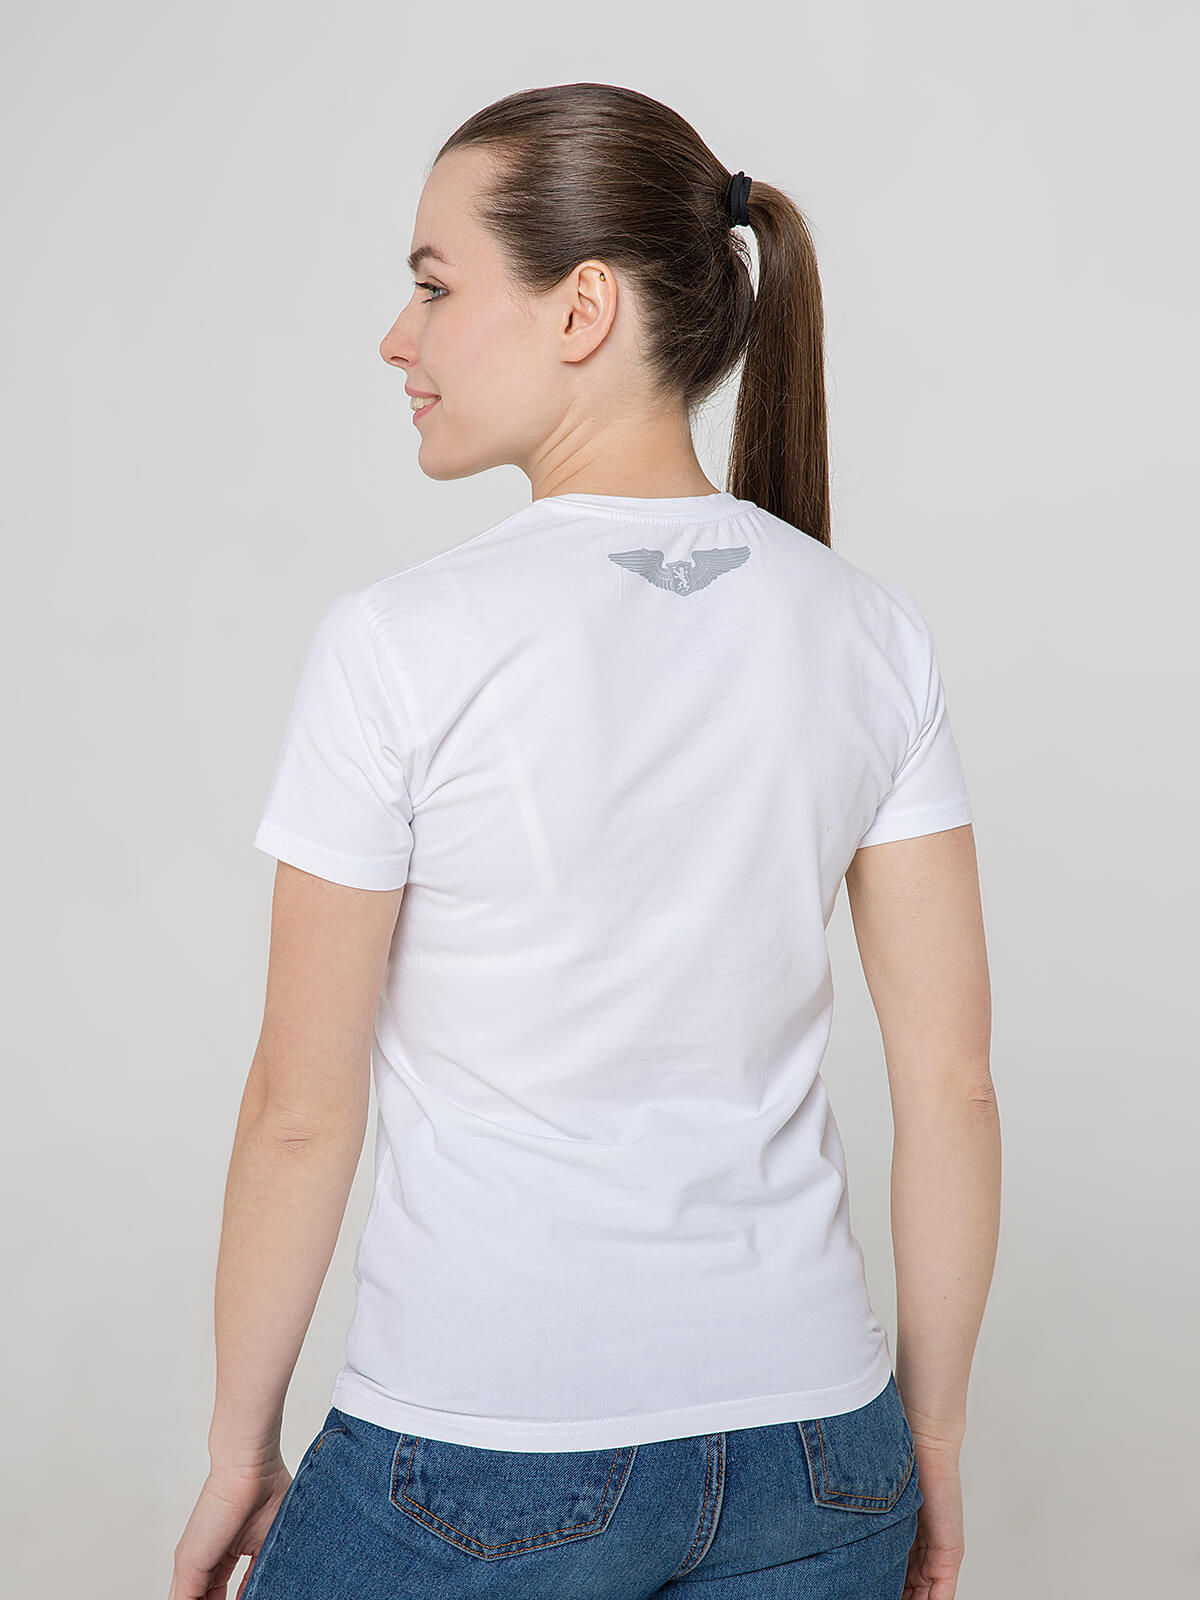 Women's T-Shirt Franz Joseph. Color white.  Don't worry about the universal size.